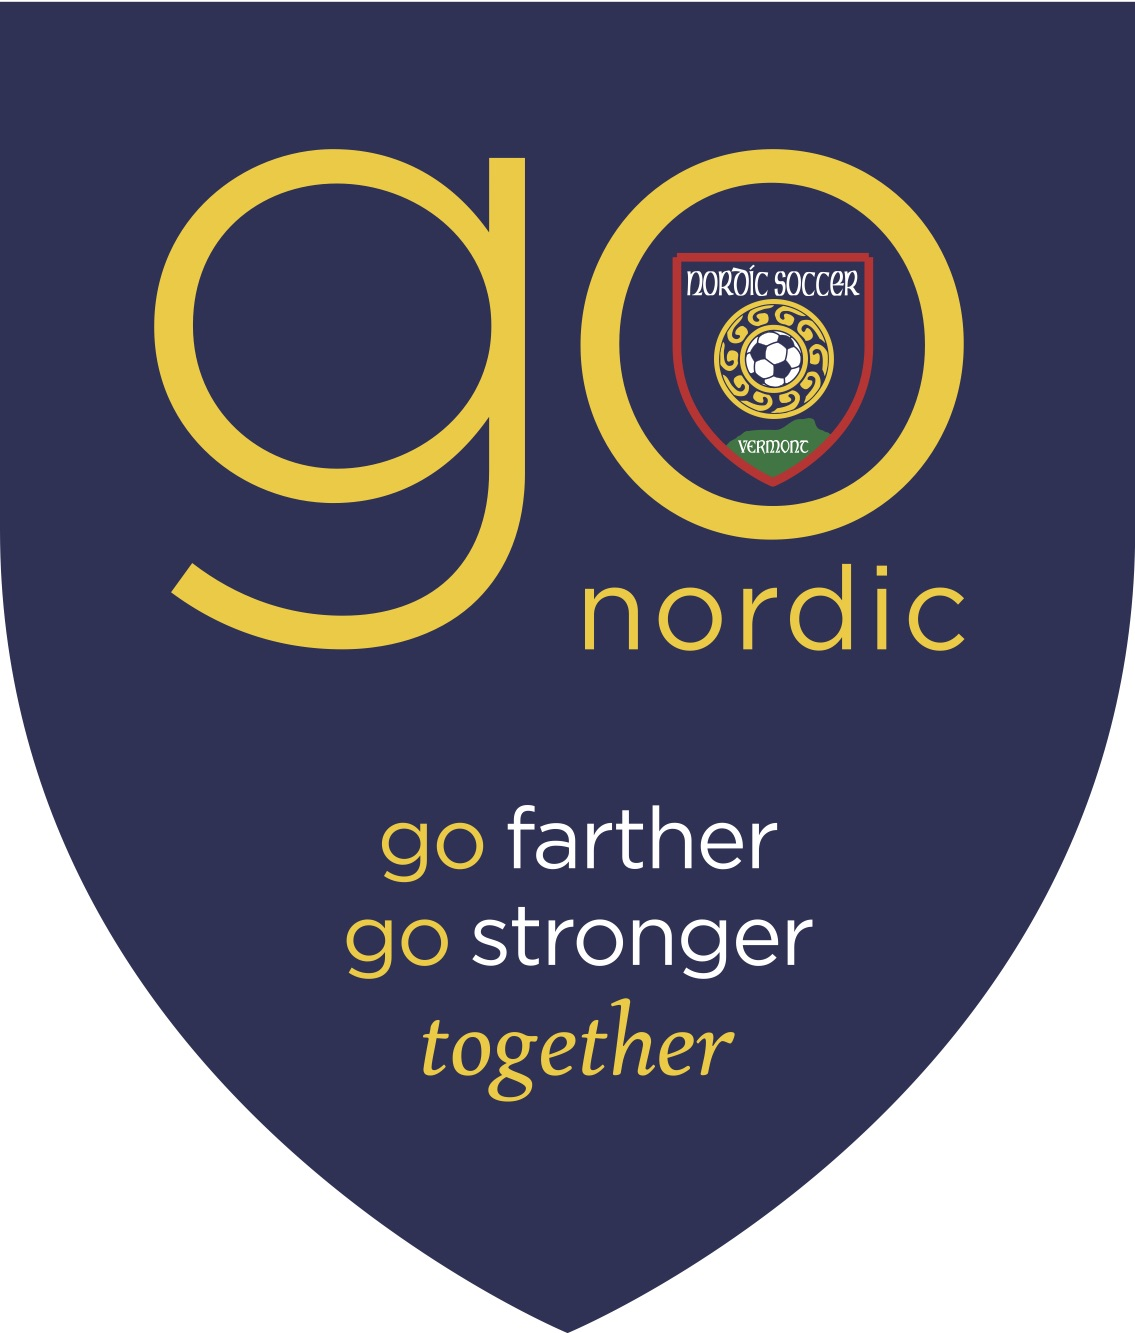 Previous GO Nordic Events